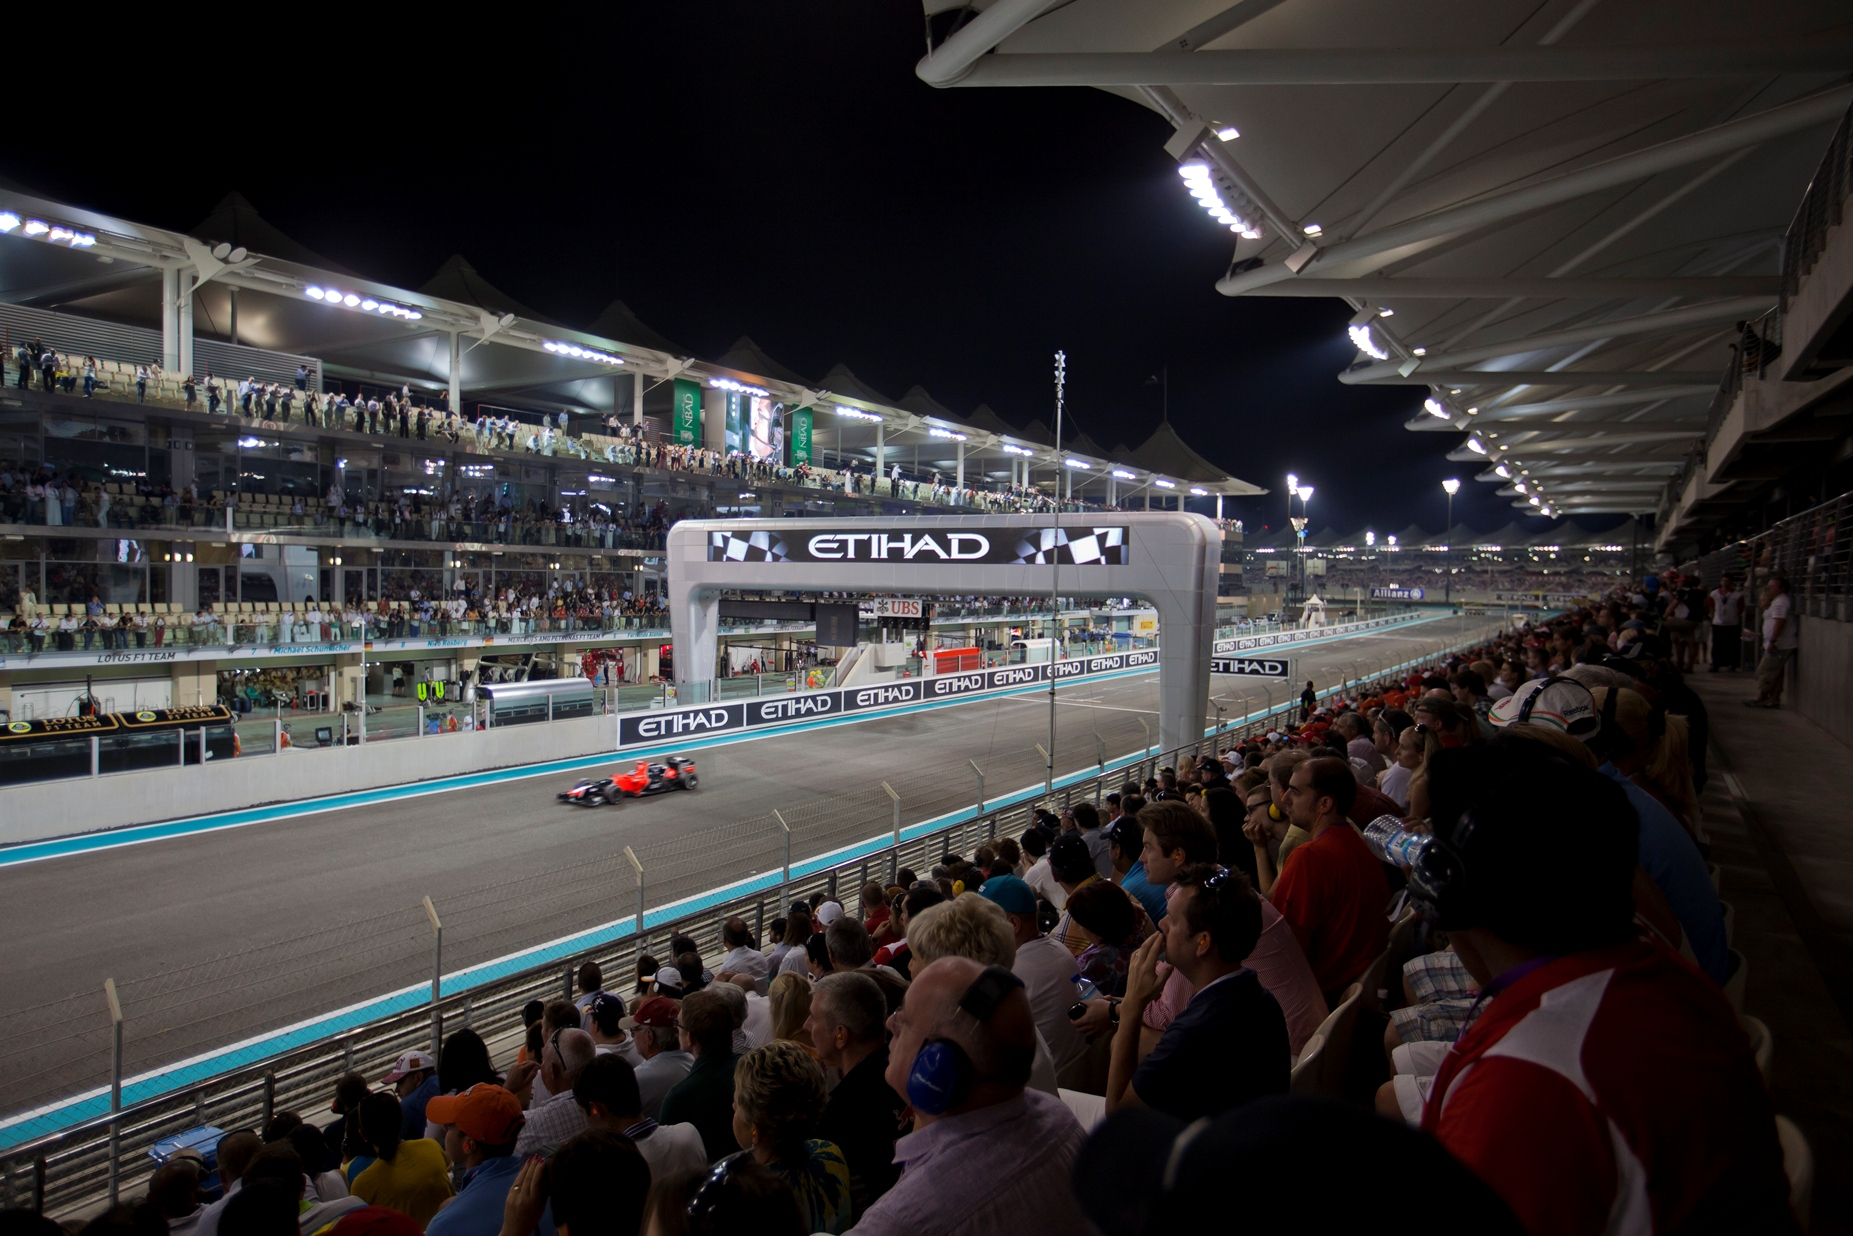 Fastest Roller Coaster In The World >> After the checkered flag is lowered in Abu Dhabi